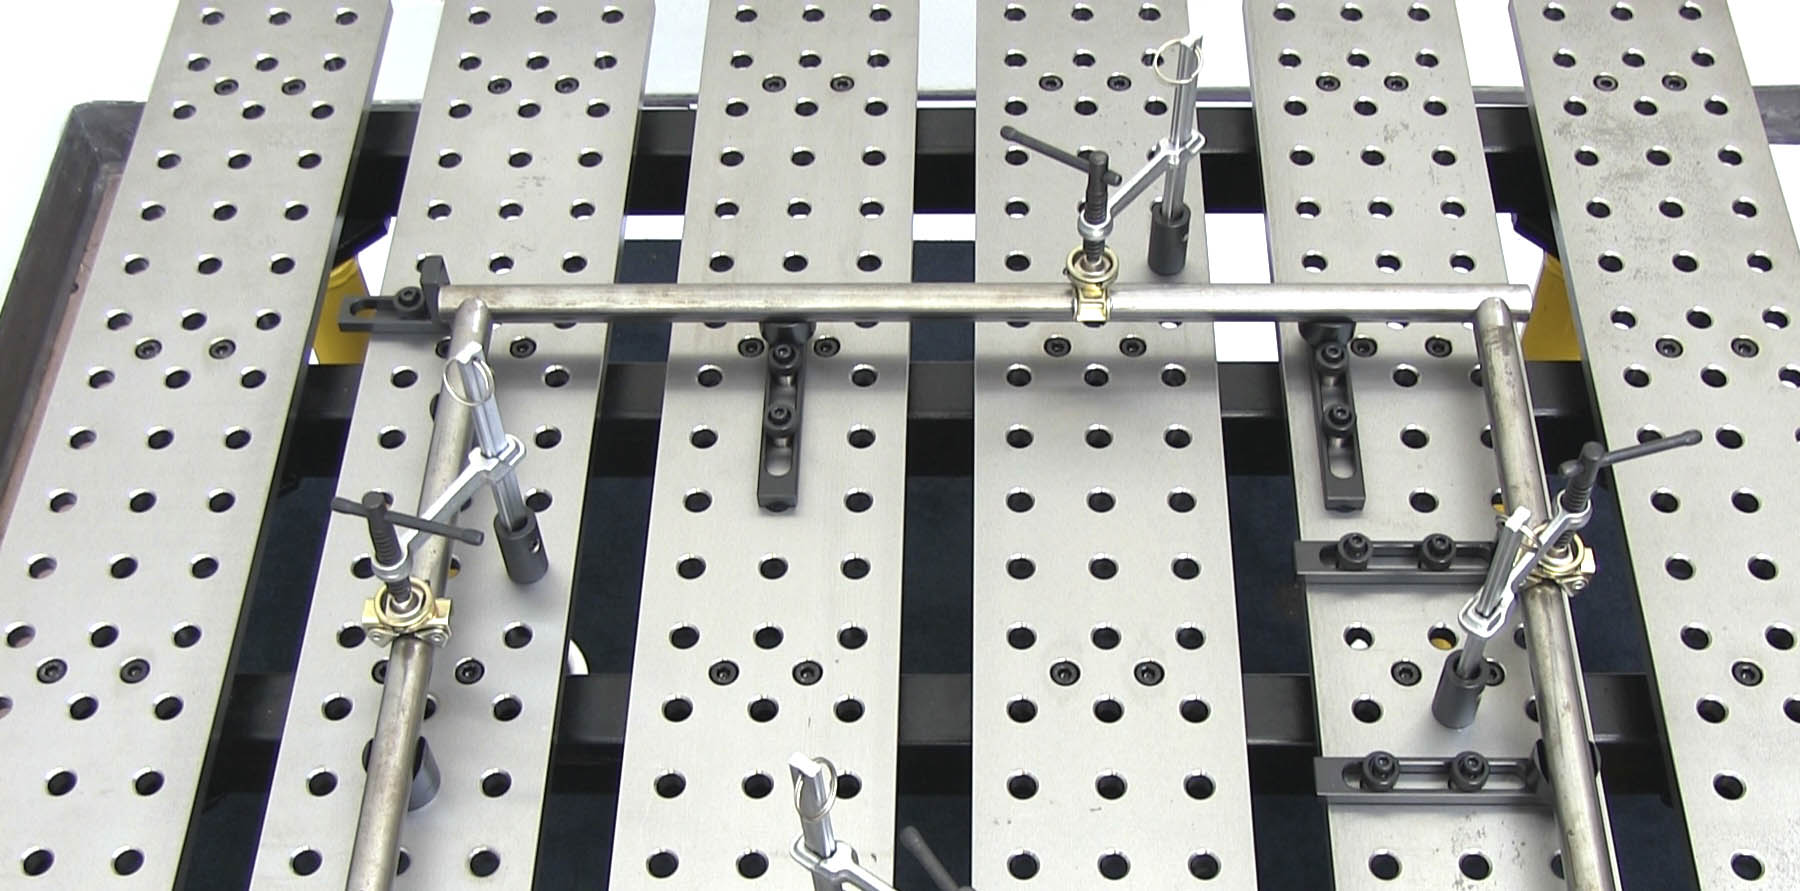 Fixture Efficiently and Fabricate Accurately